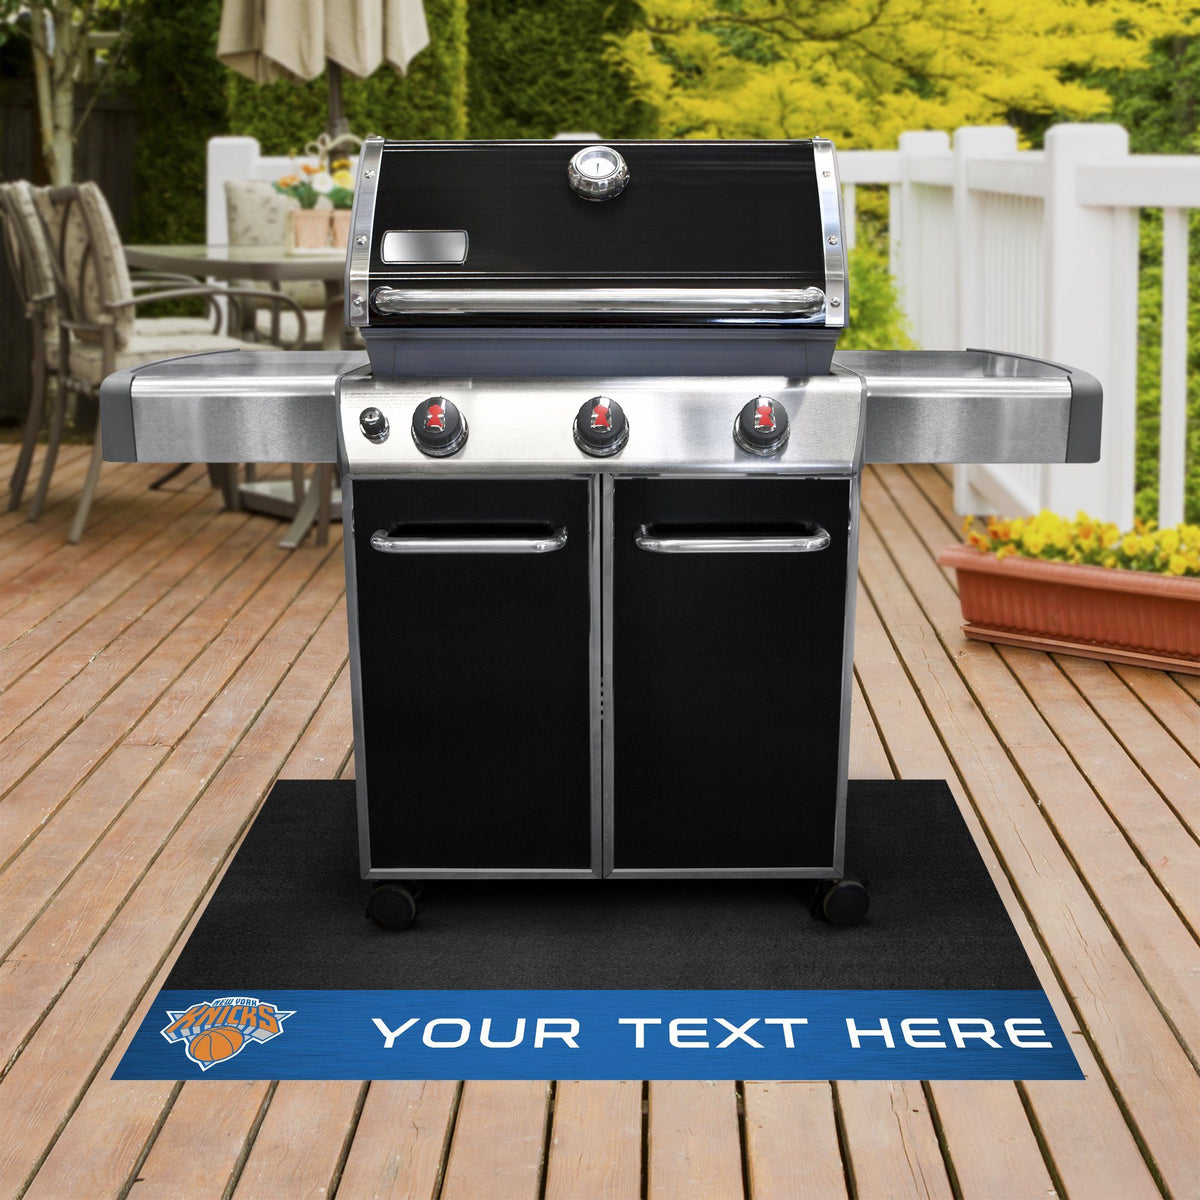 NBA Personalized Grill Mat Personalized Grill Mat Fan Mats New York Knicks